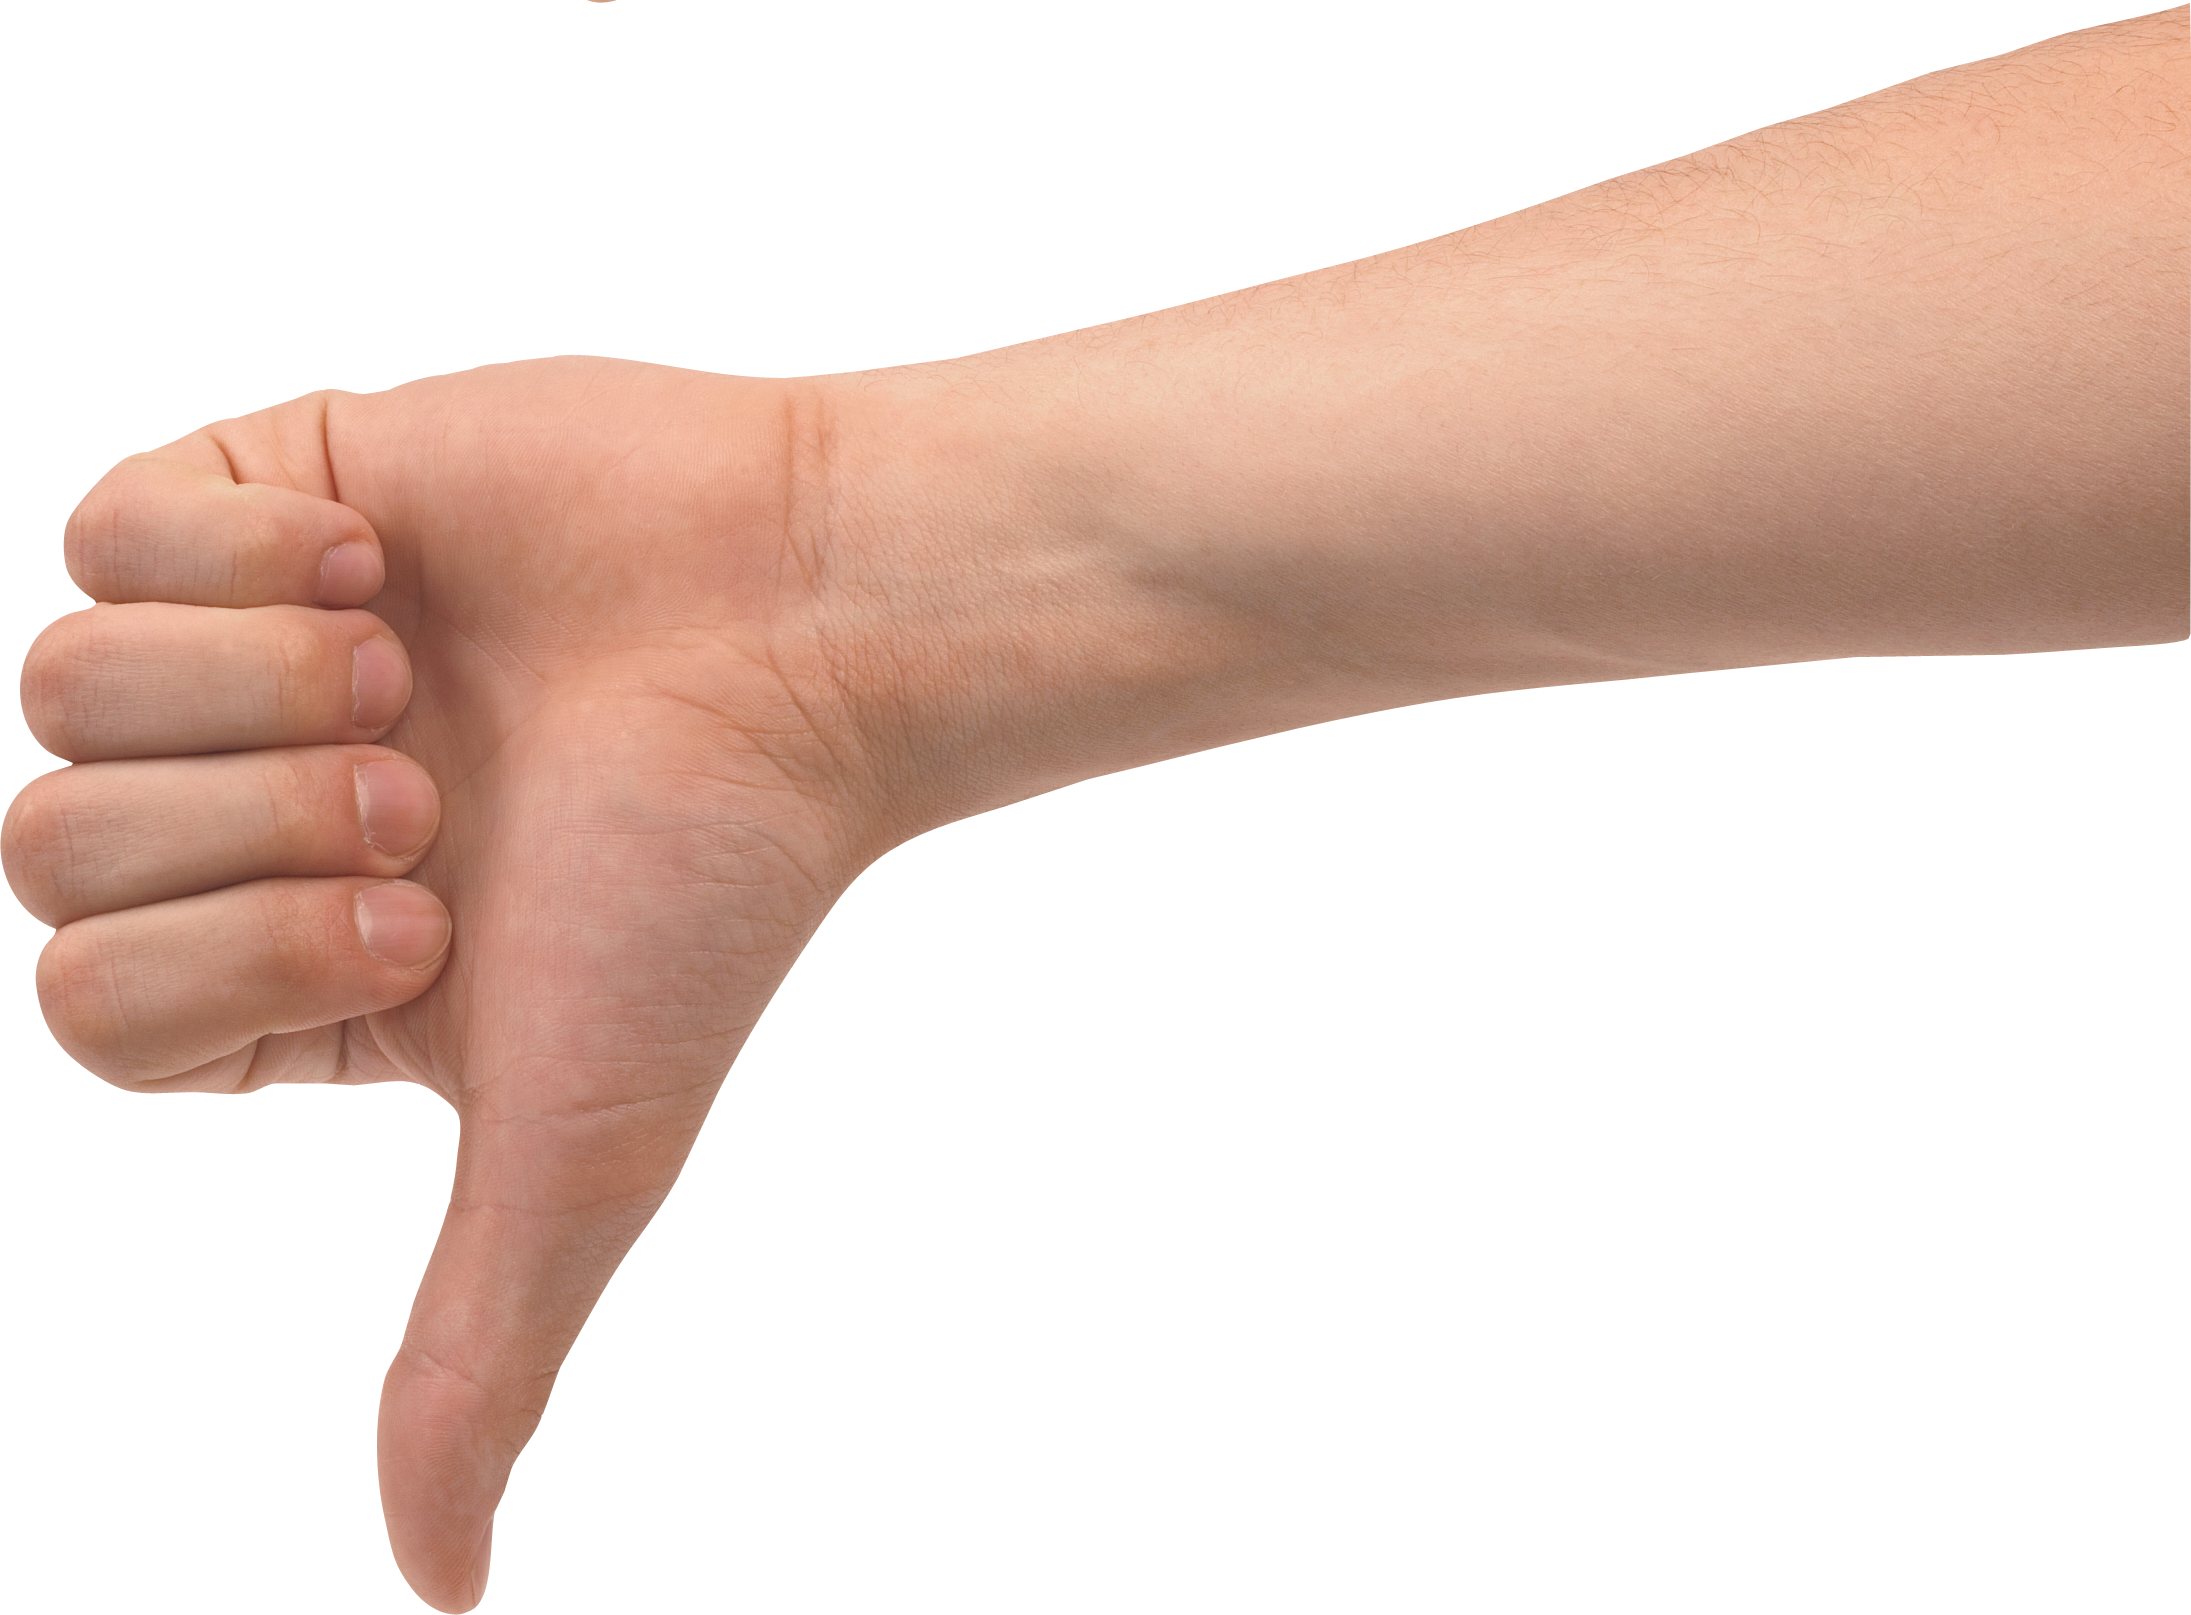 Now you can download Hands PNG Picture